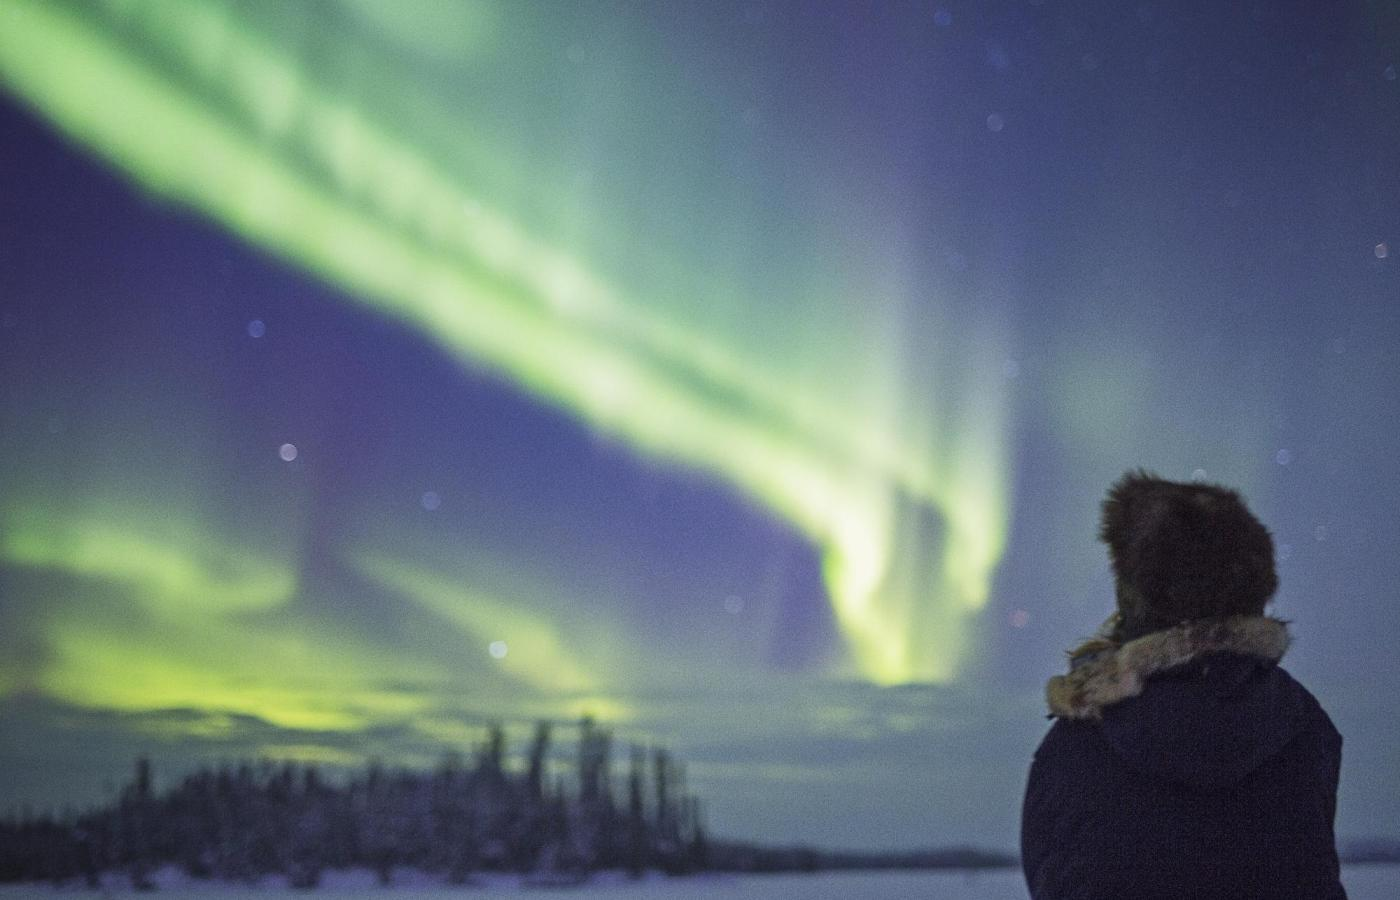 a person in winter gear watched the norther lights dance across the night sky.